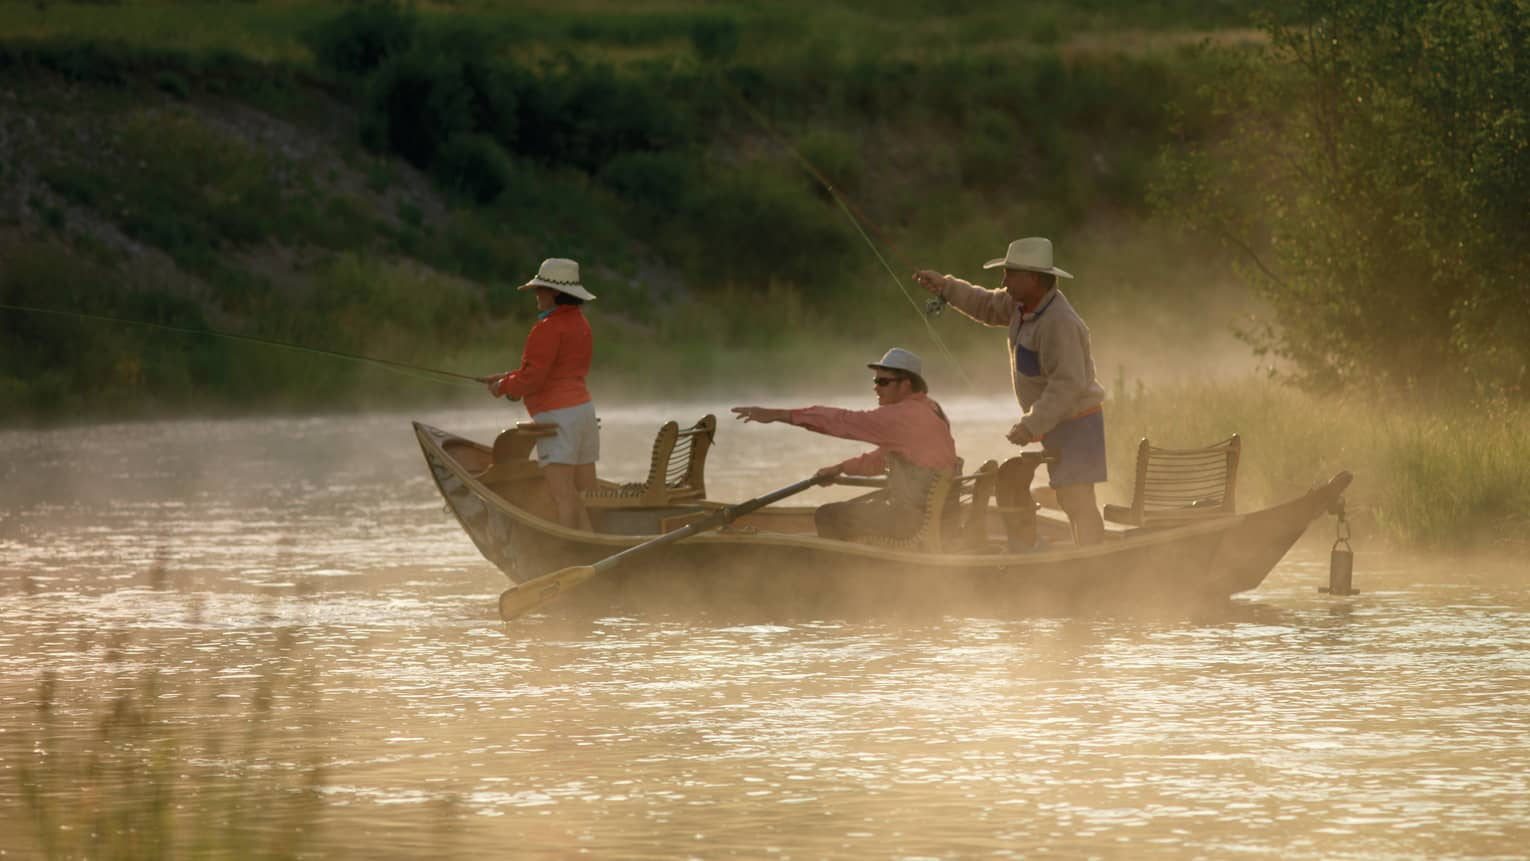 Mist rises from river over three people in fishing boat, one pointing to water